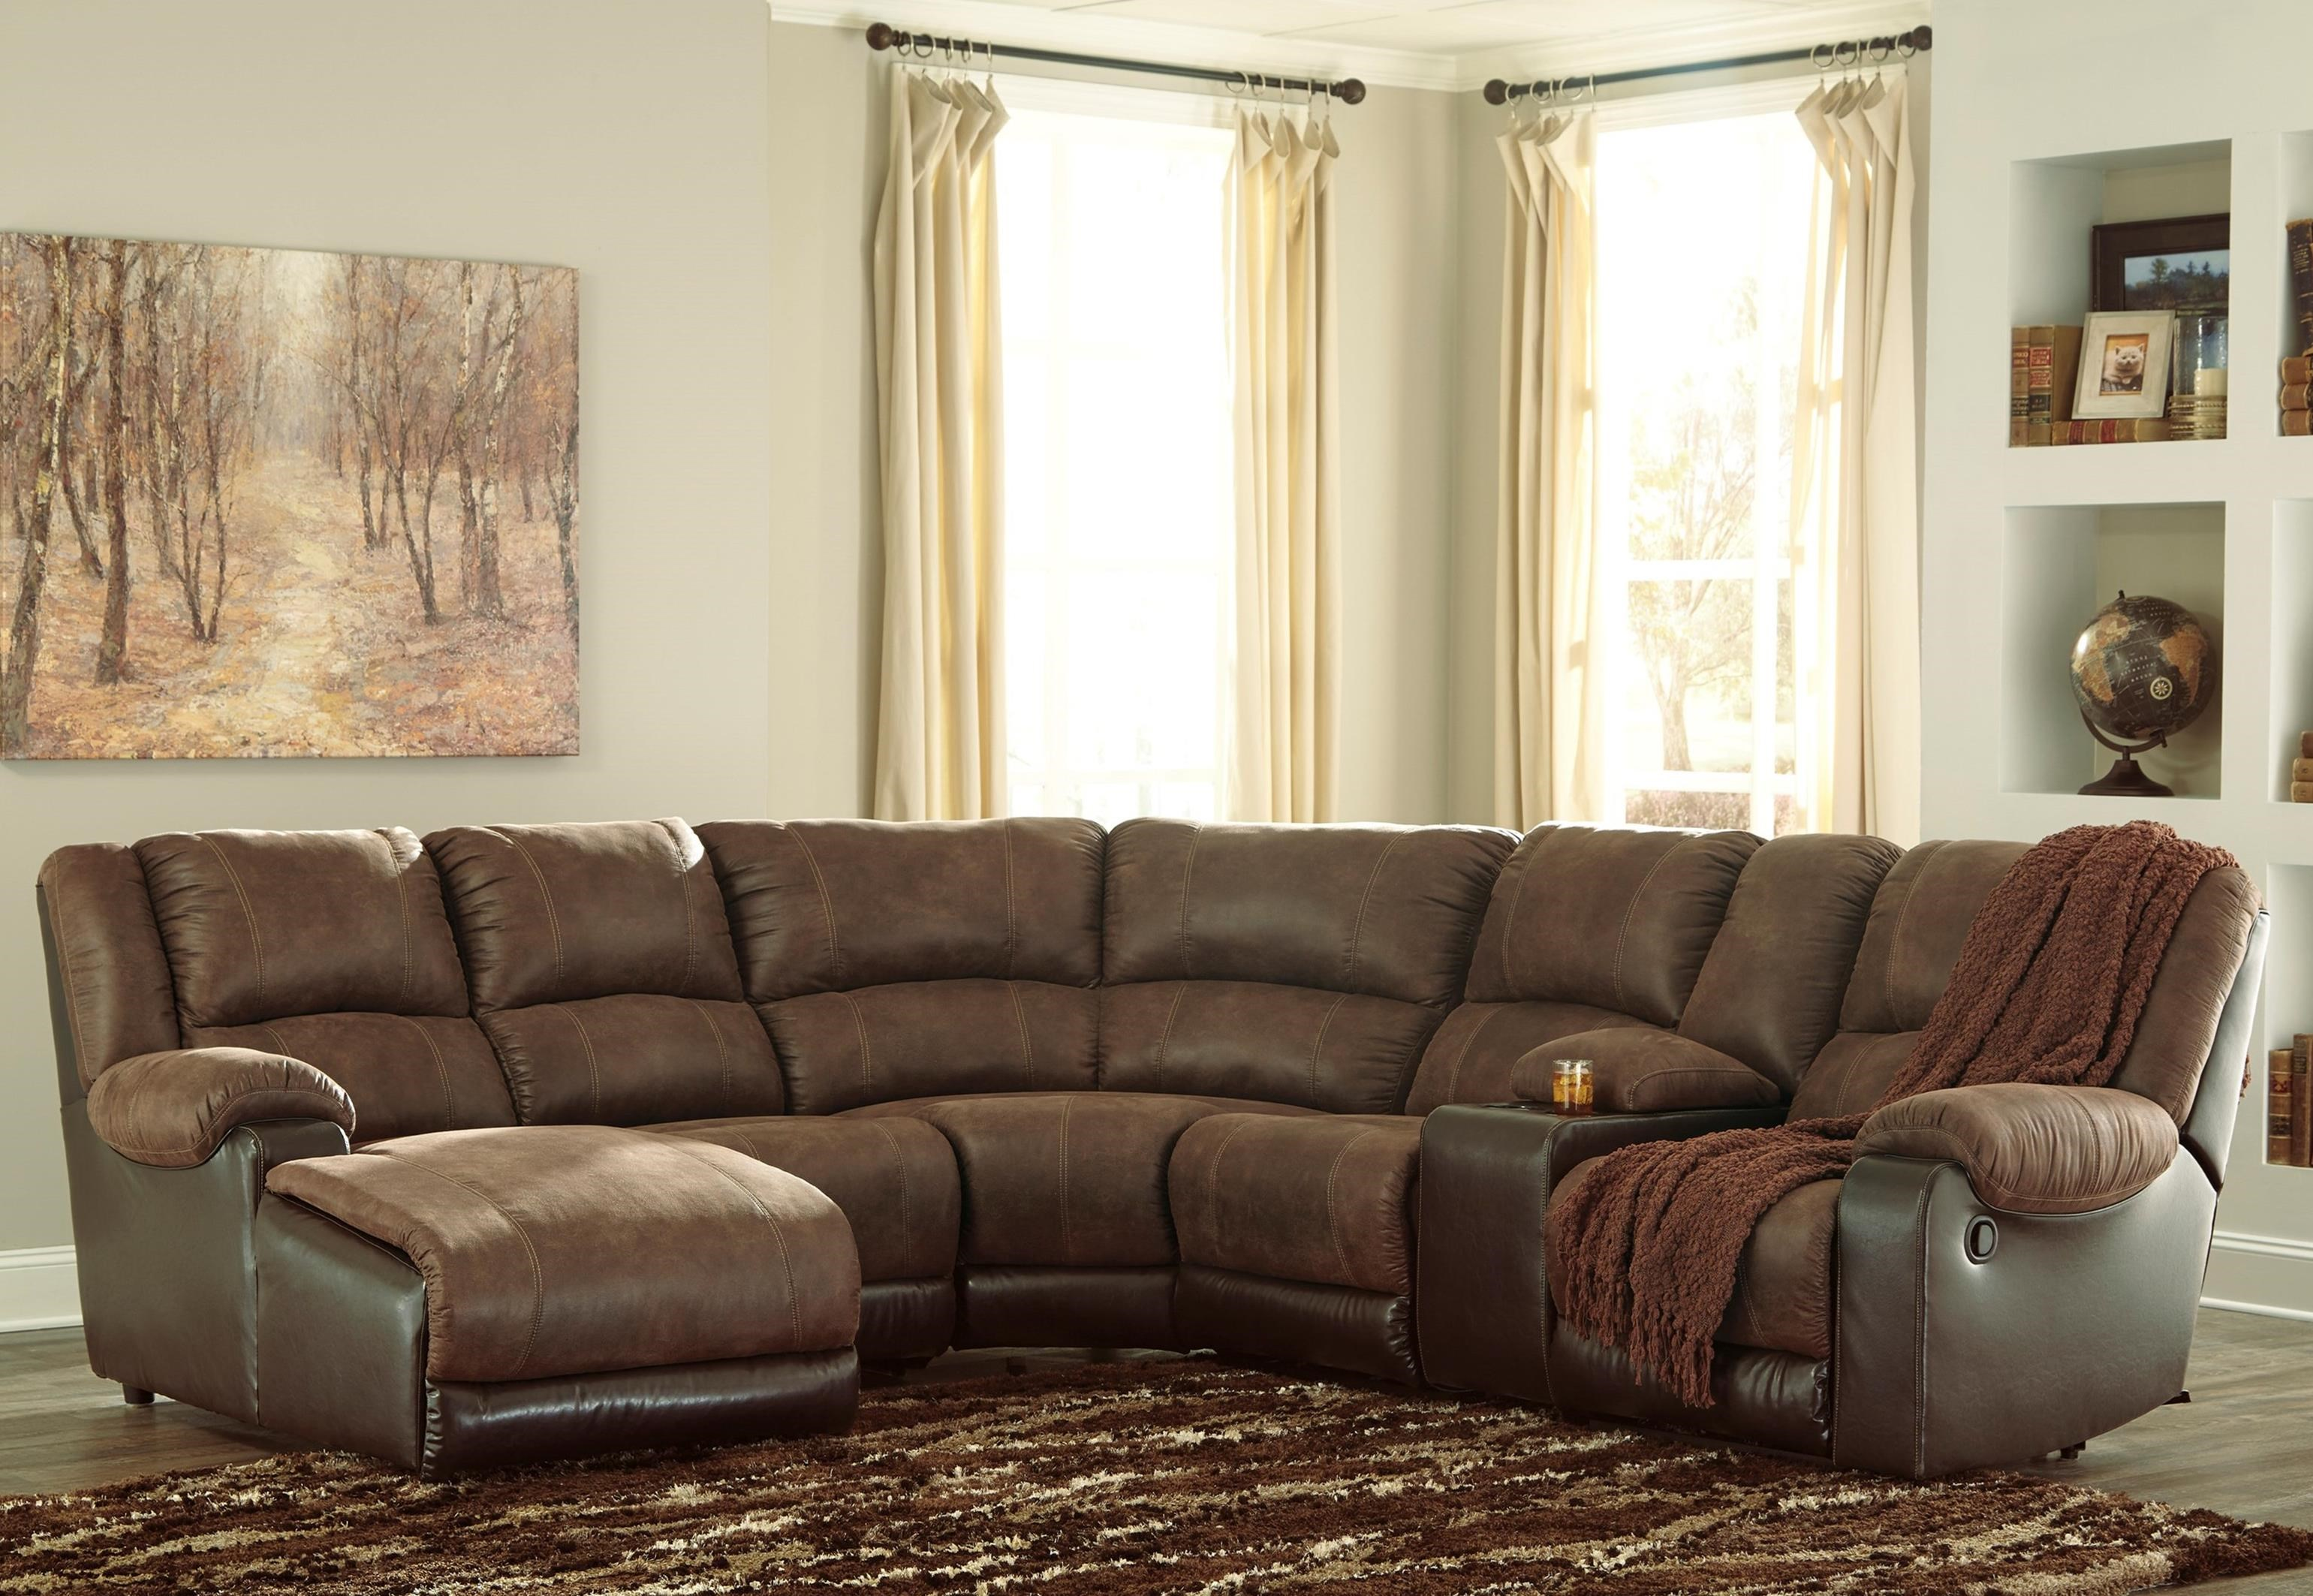 Nantahala Reclining Sectional with Chaise & Console by Ashley (Signature Design) at Johnny Janosik